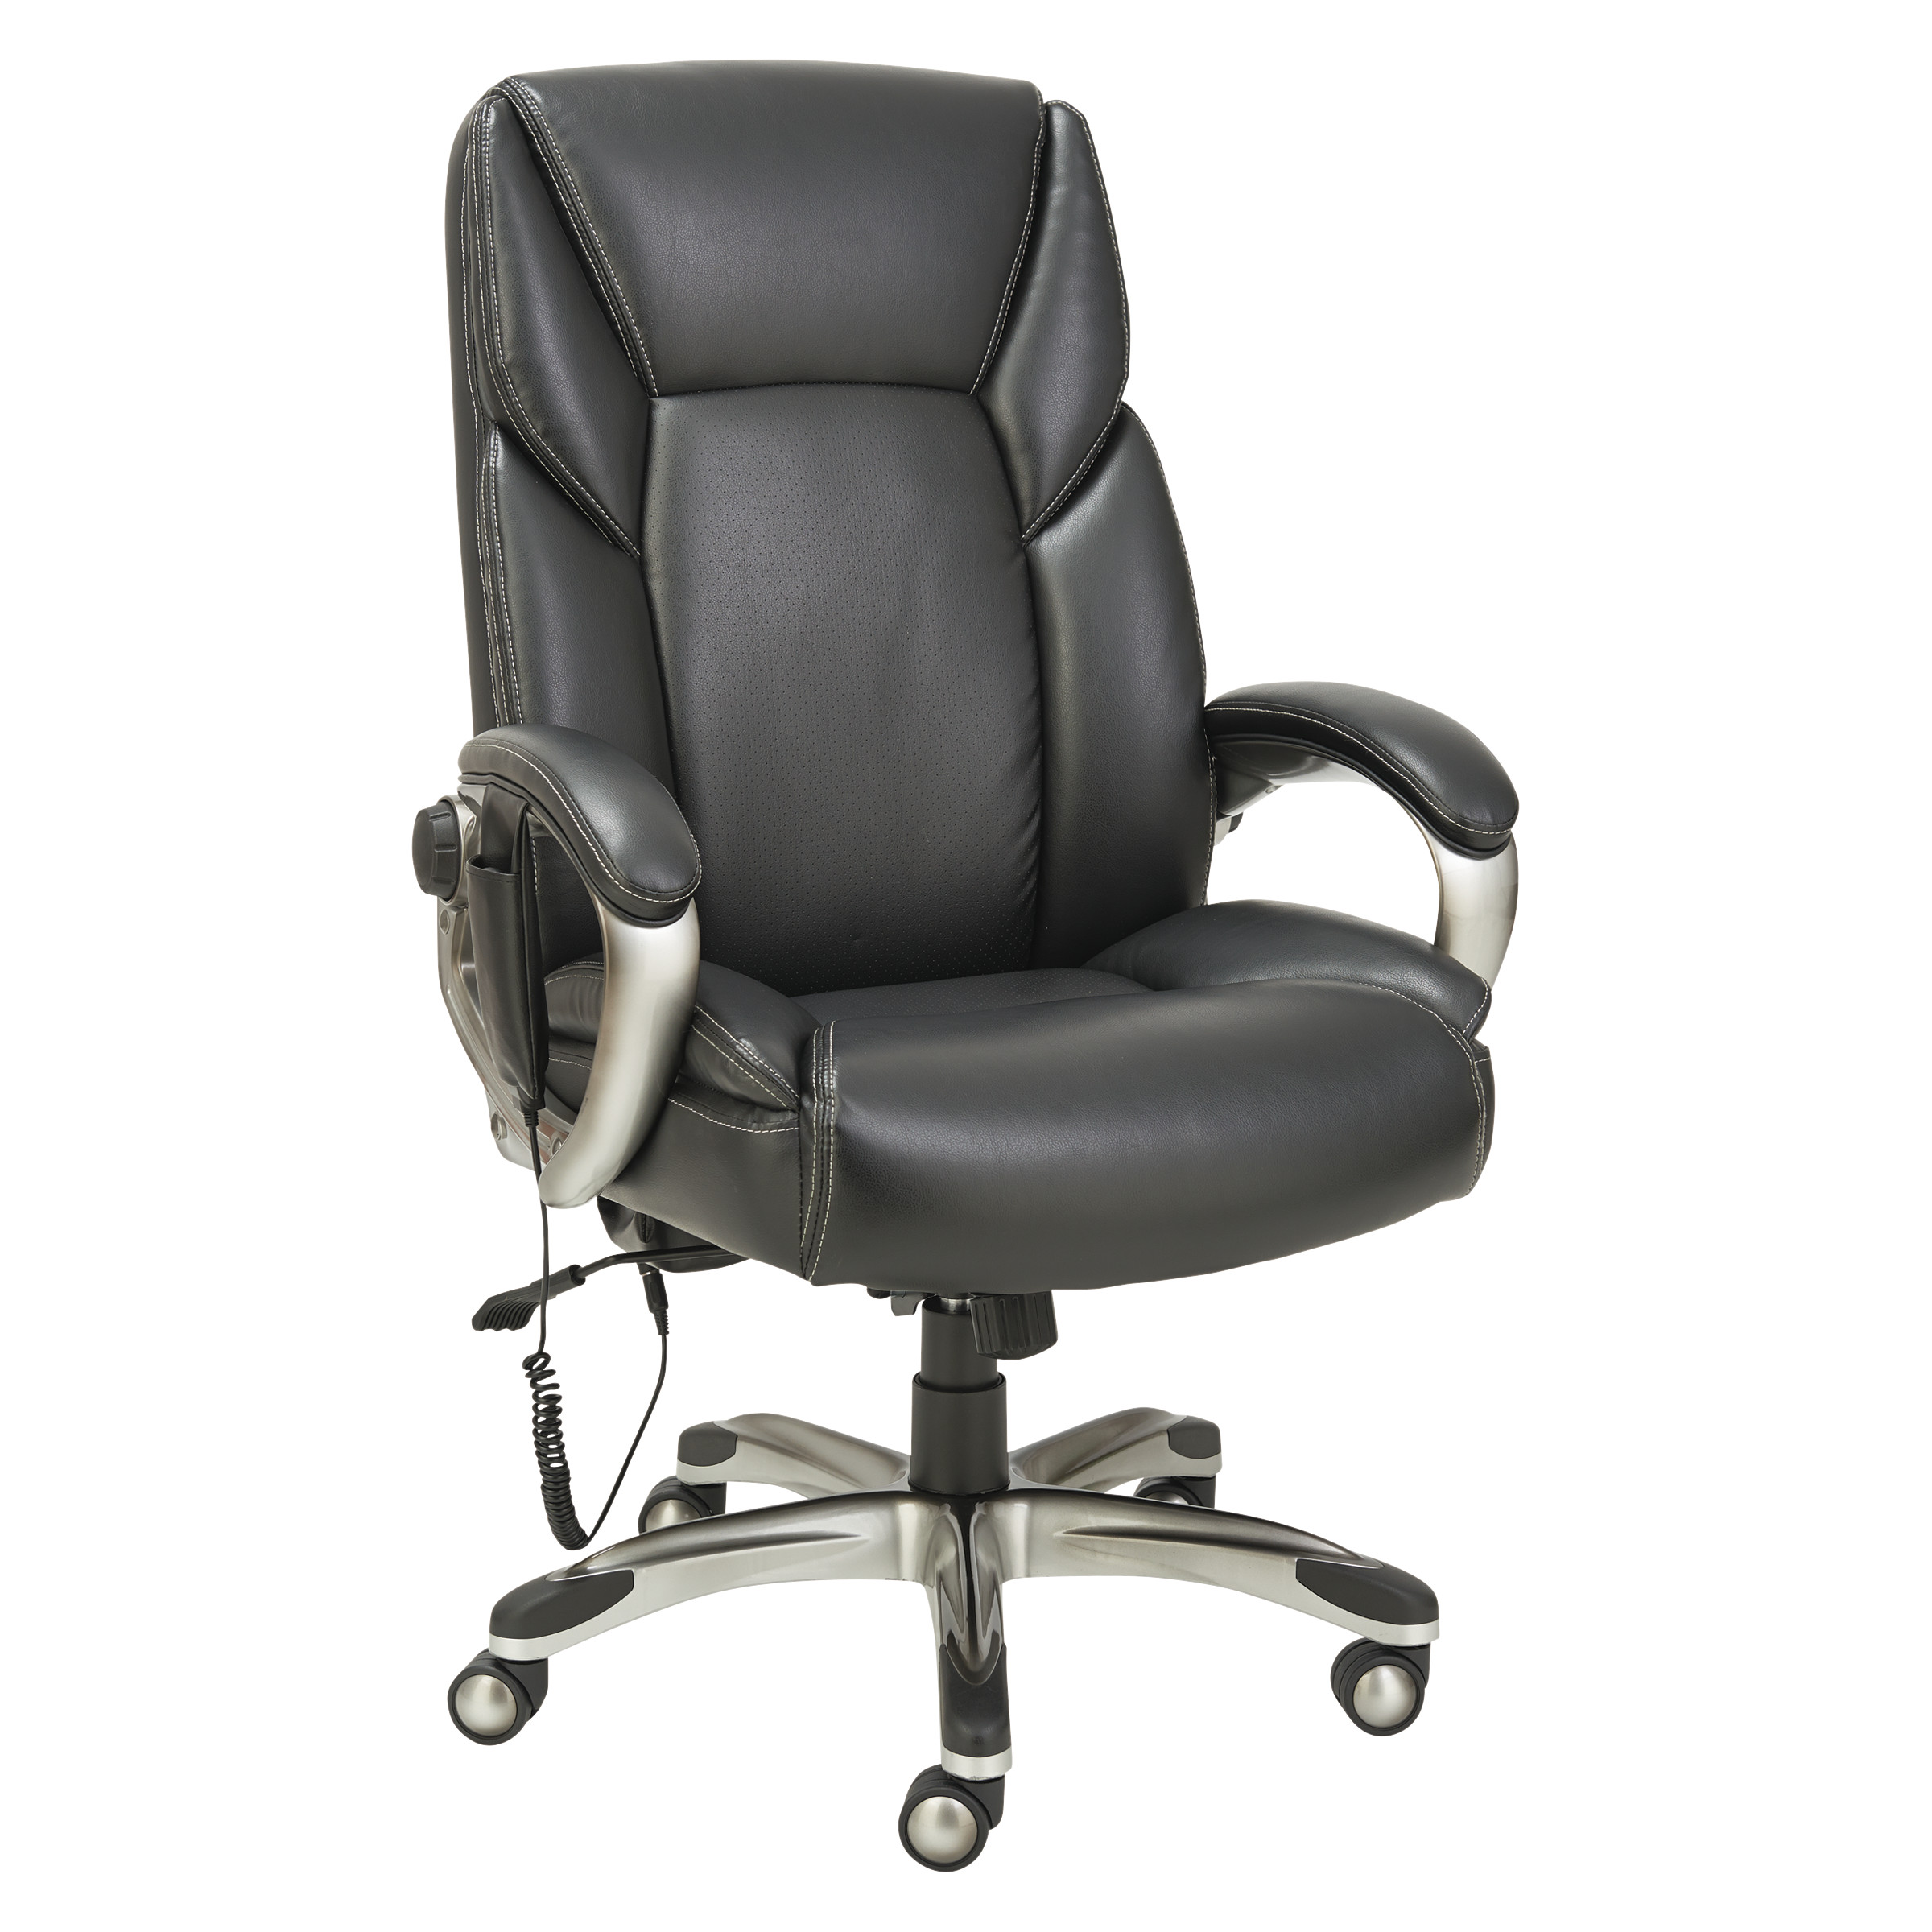 Alera Shiatsu Massage Chair, Black, Silver Base